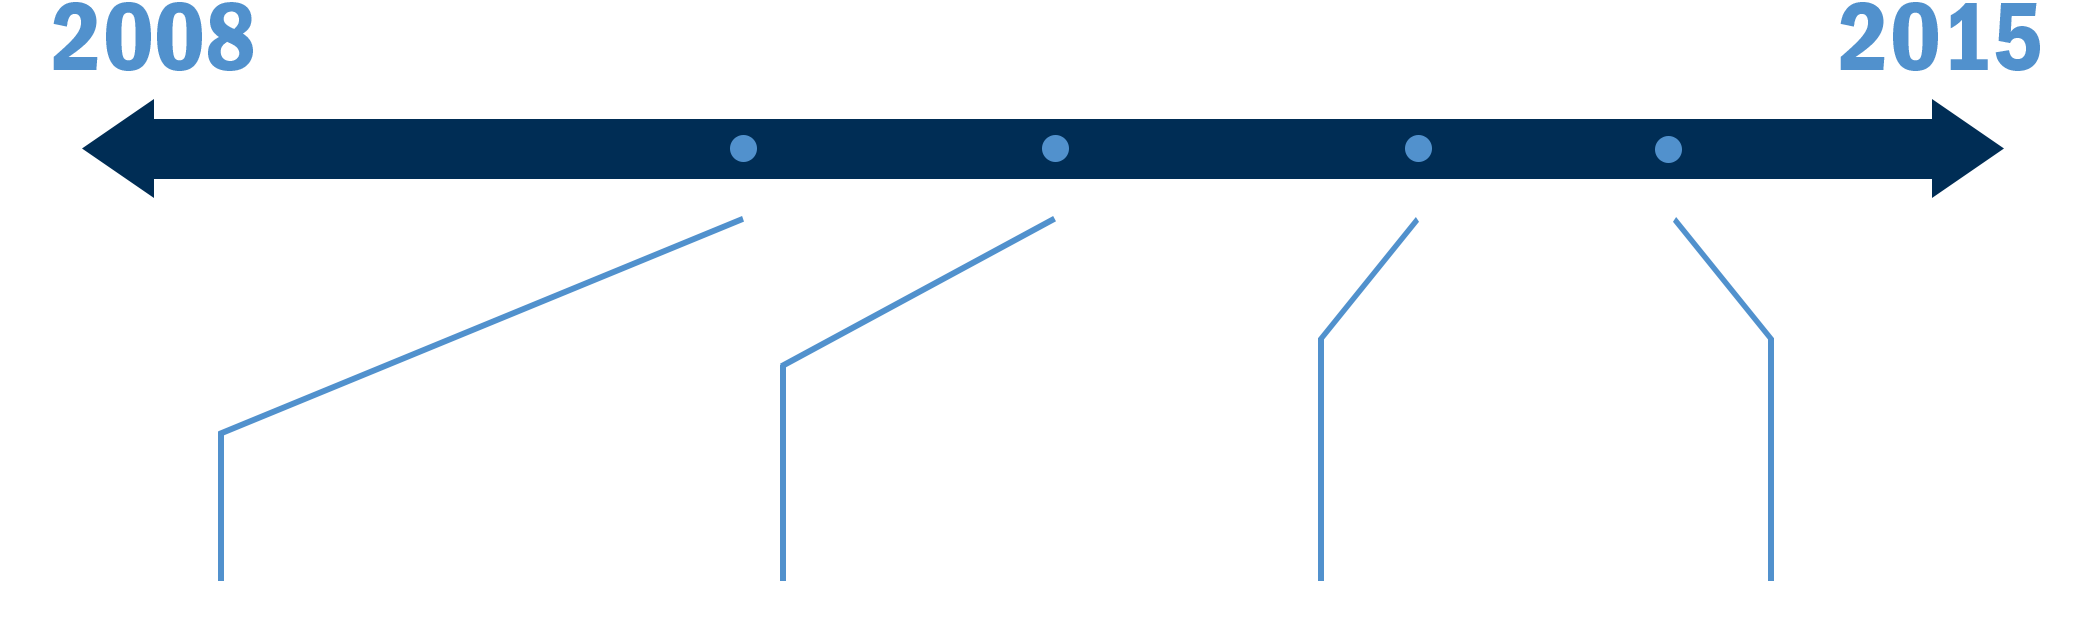 A timeline arrow starting at 2008 and going to 2015